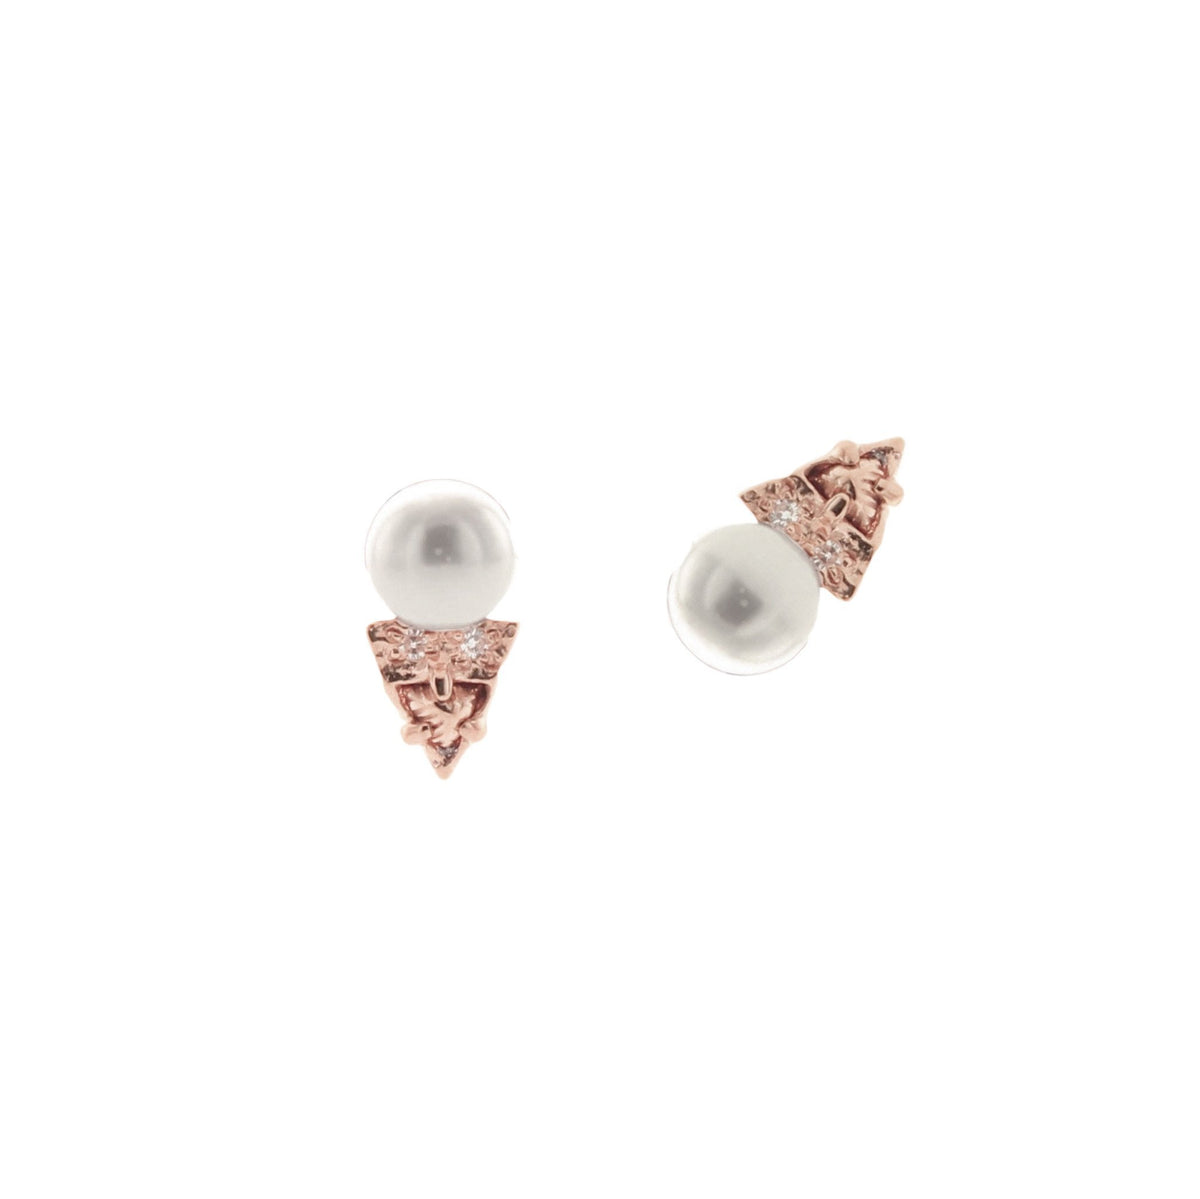 MINI FIERCE STUD EARRINGS - FRESHWATER PEARL, CUBIC ZIRCONIA & ROSE GOLD - SO PRETTY CARA COTTER